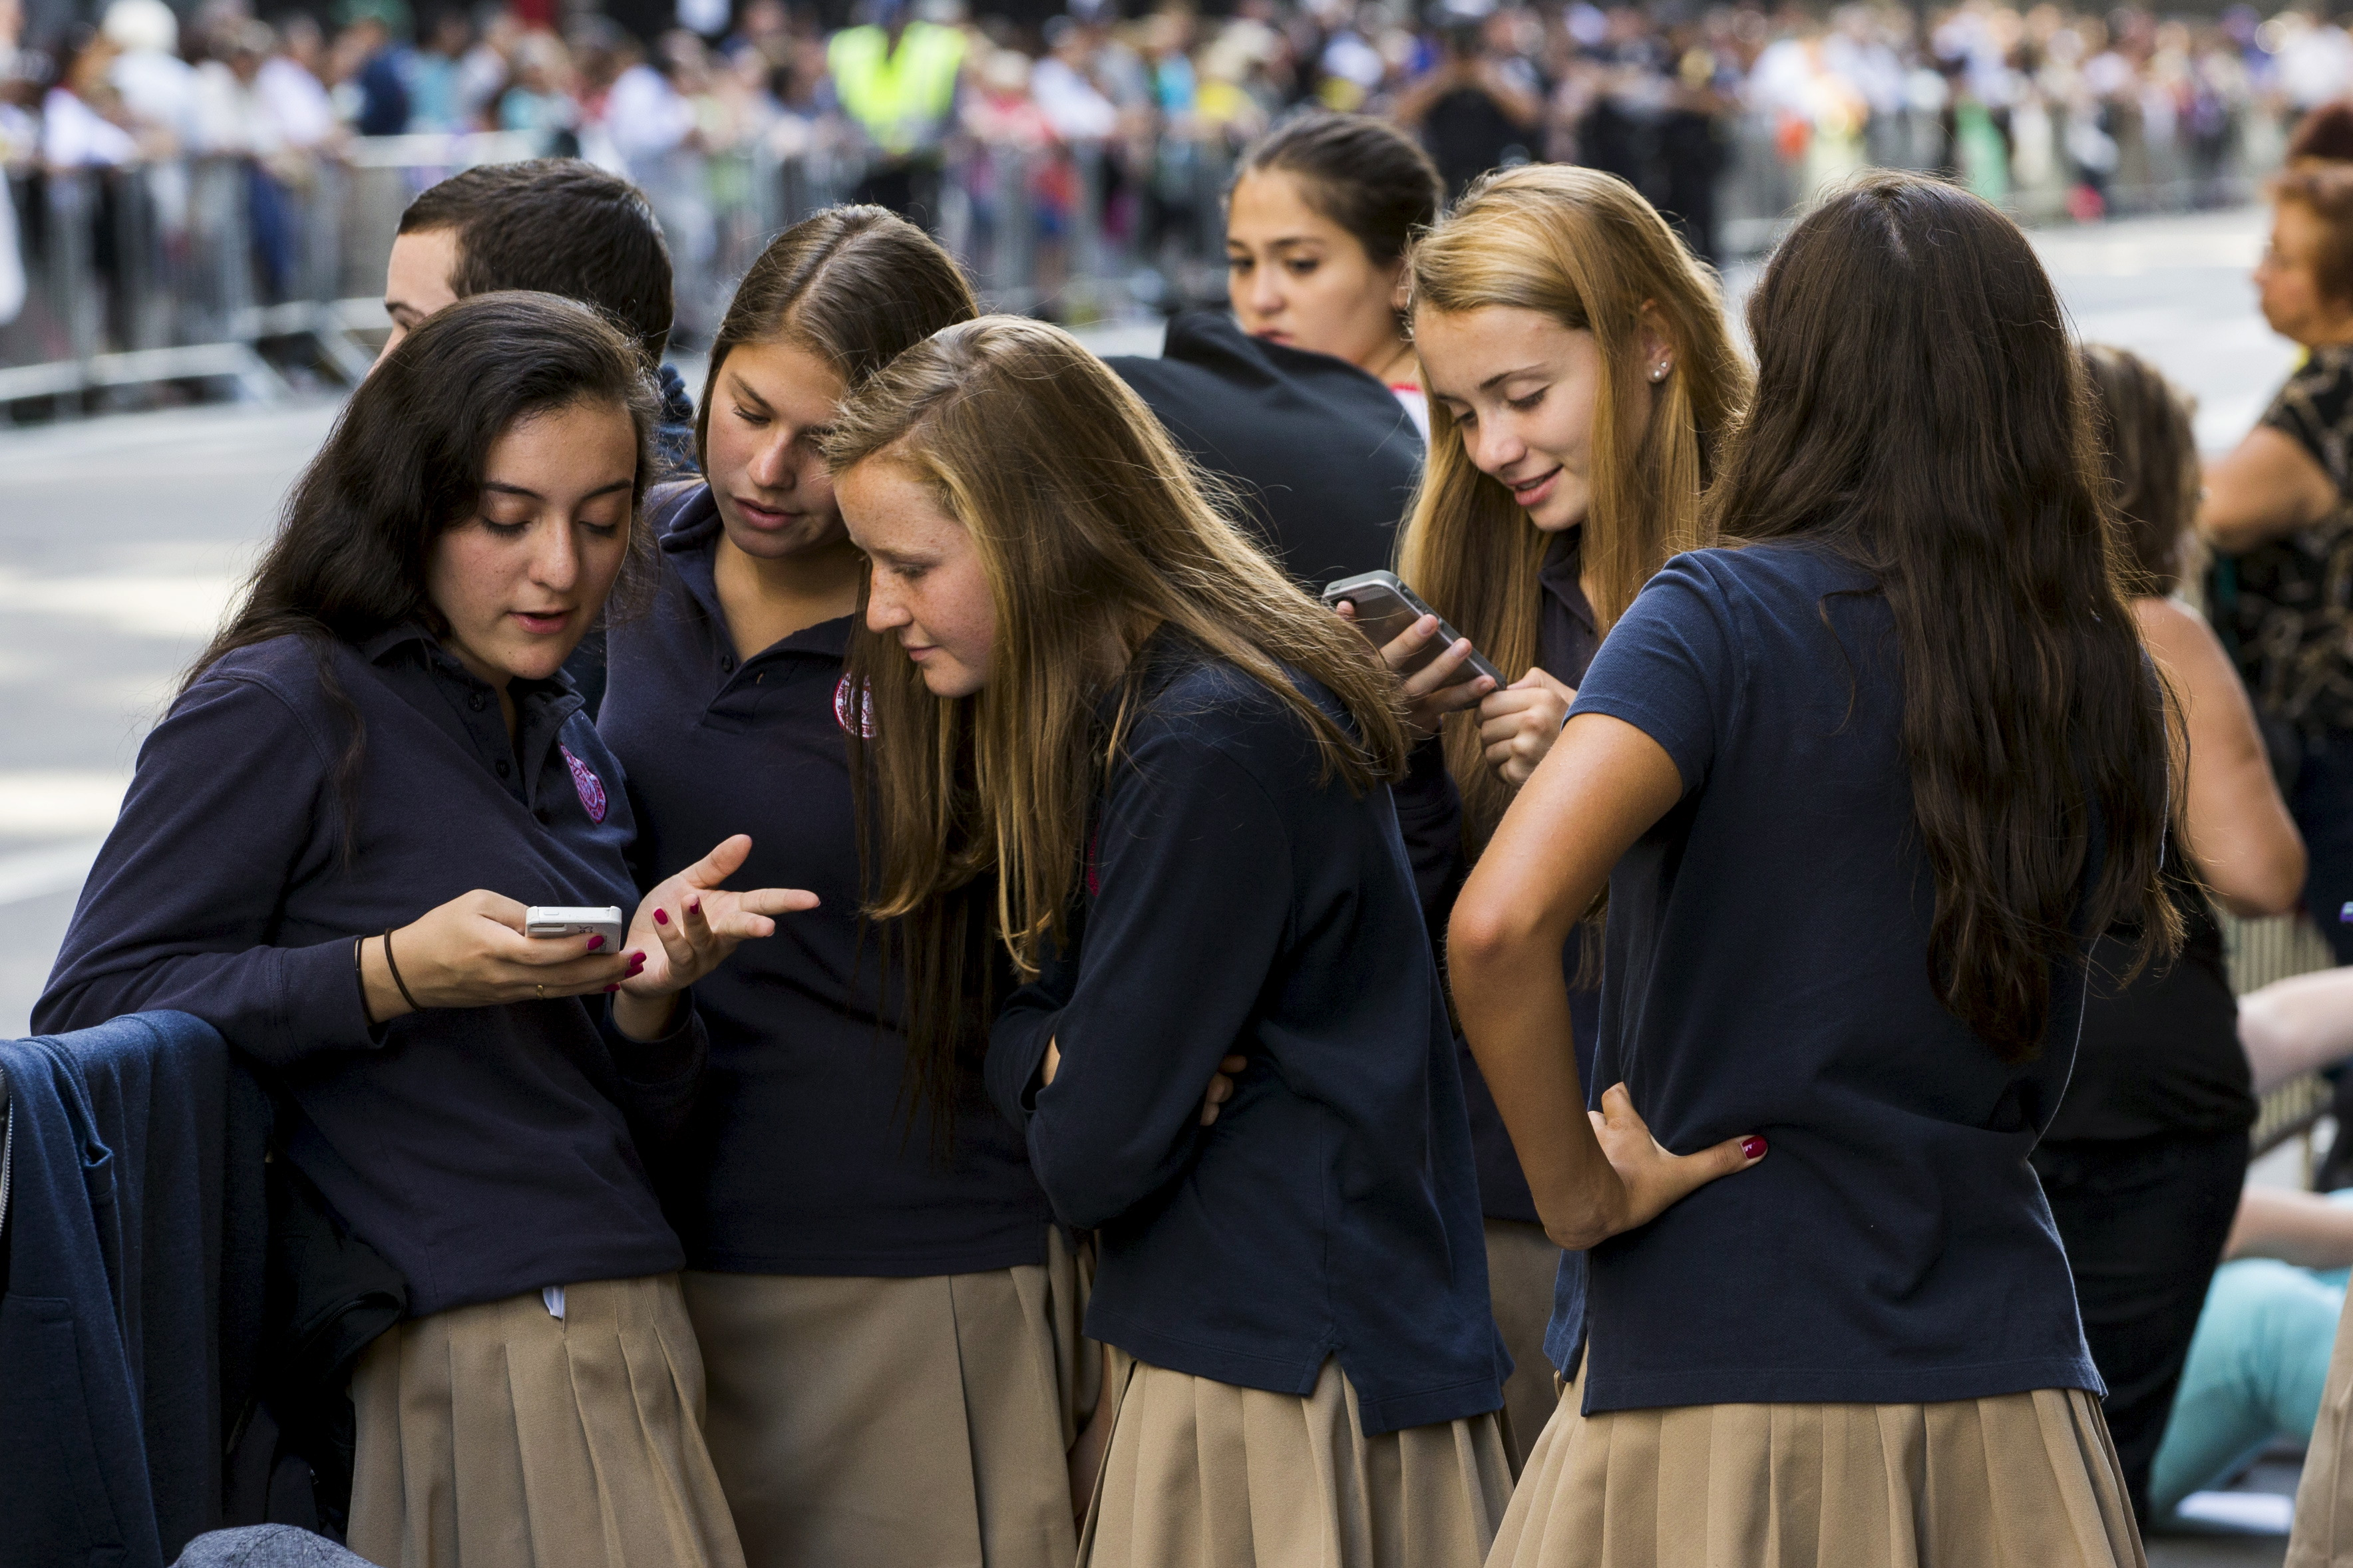 A group of Catholic school girls look at their phones as they wait on the route that Pope Francis will take later in the day near St. Patrick's Cathedral in New York September 24, 2015. REUTERS/Lucas Jackson - GF10000219774